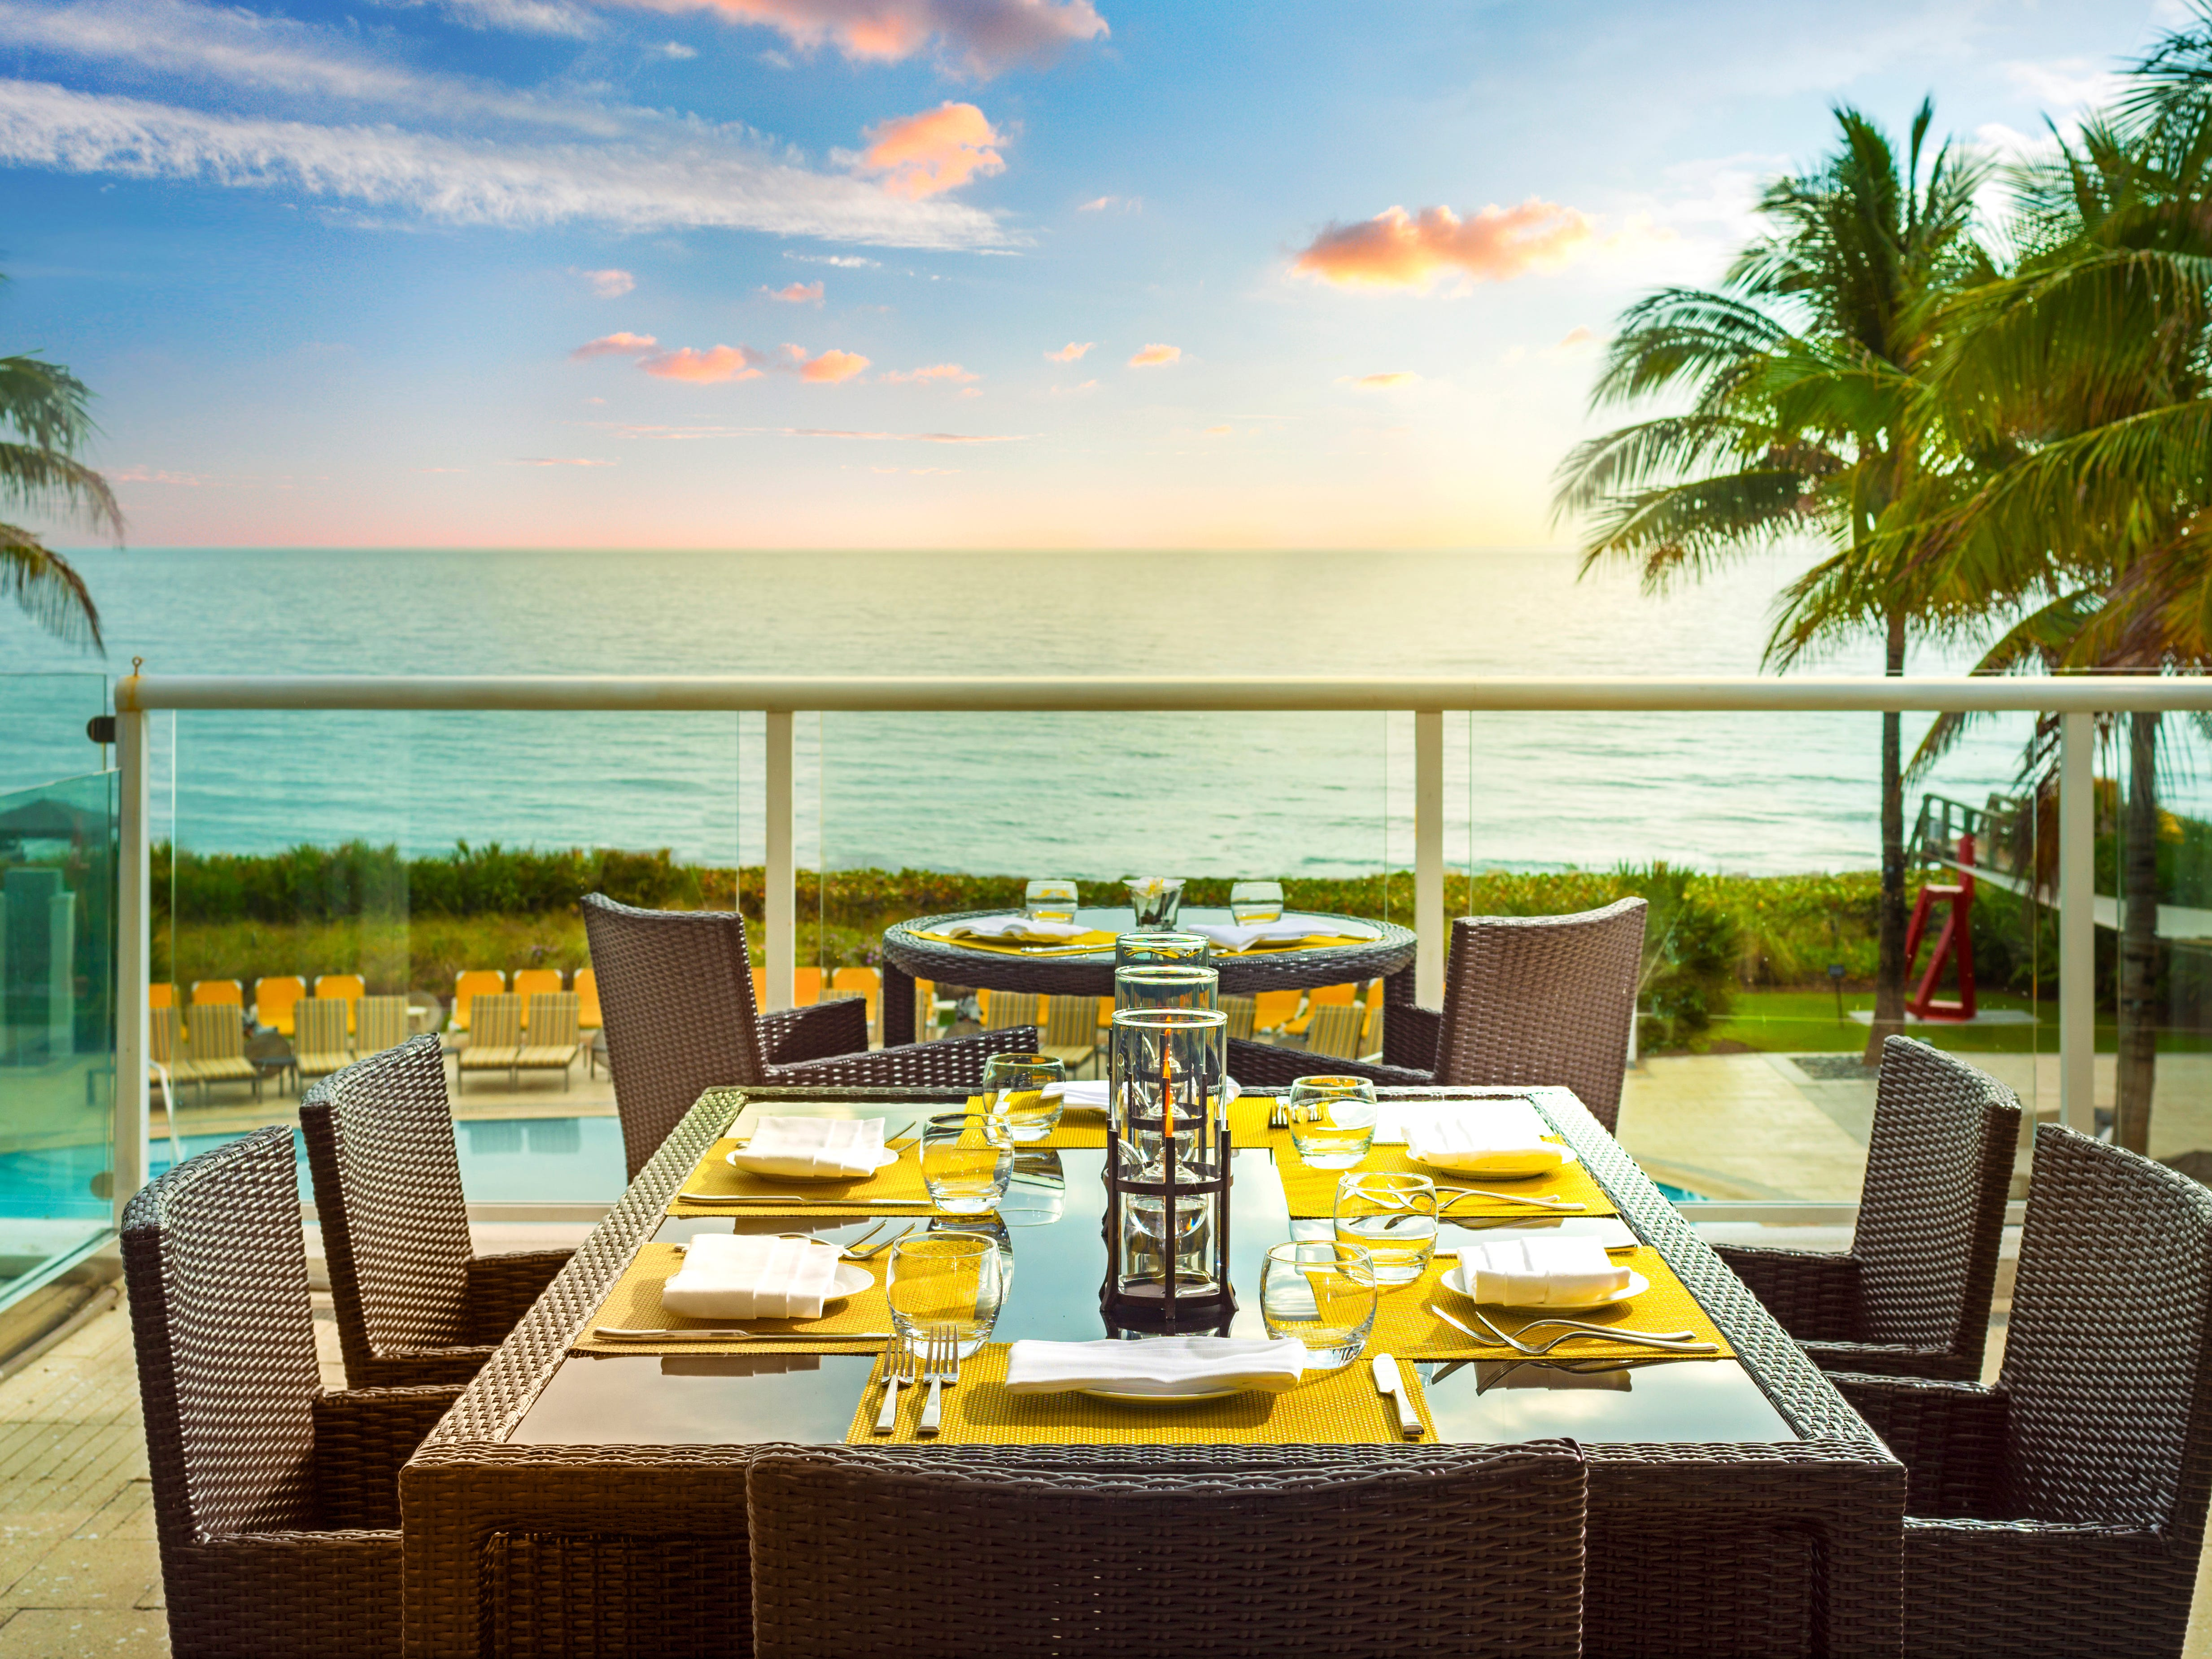 Outdoor dining at SeaGrille at Boca Beach Club.